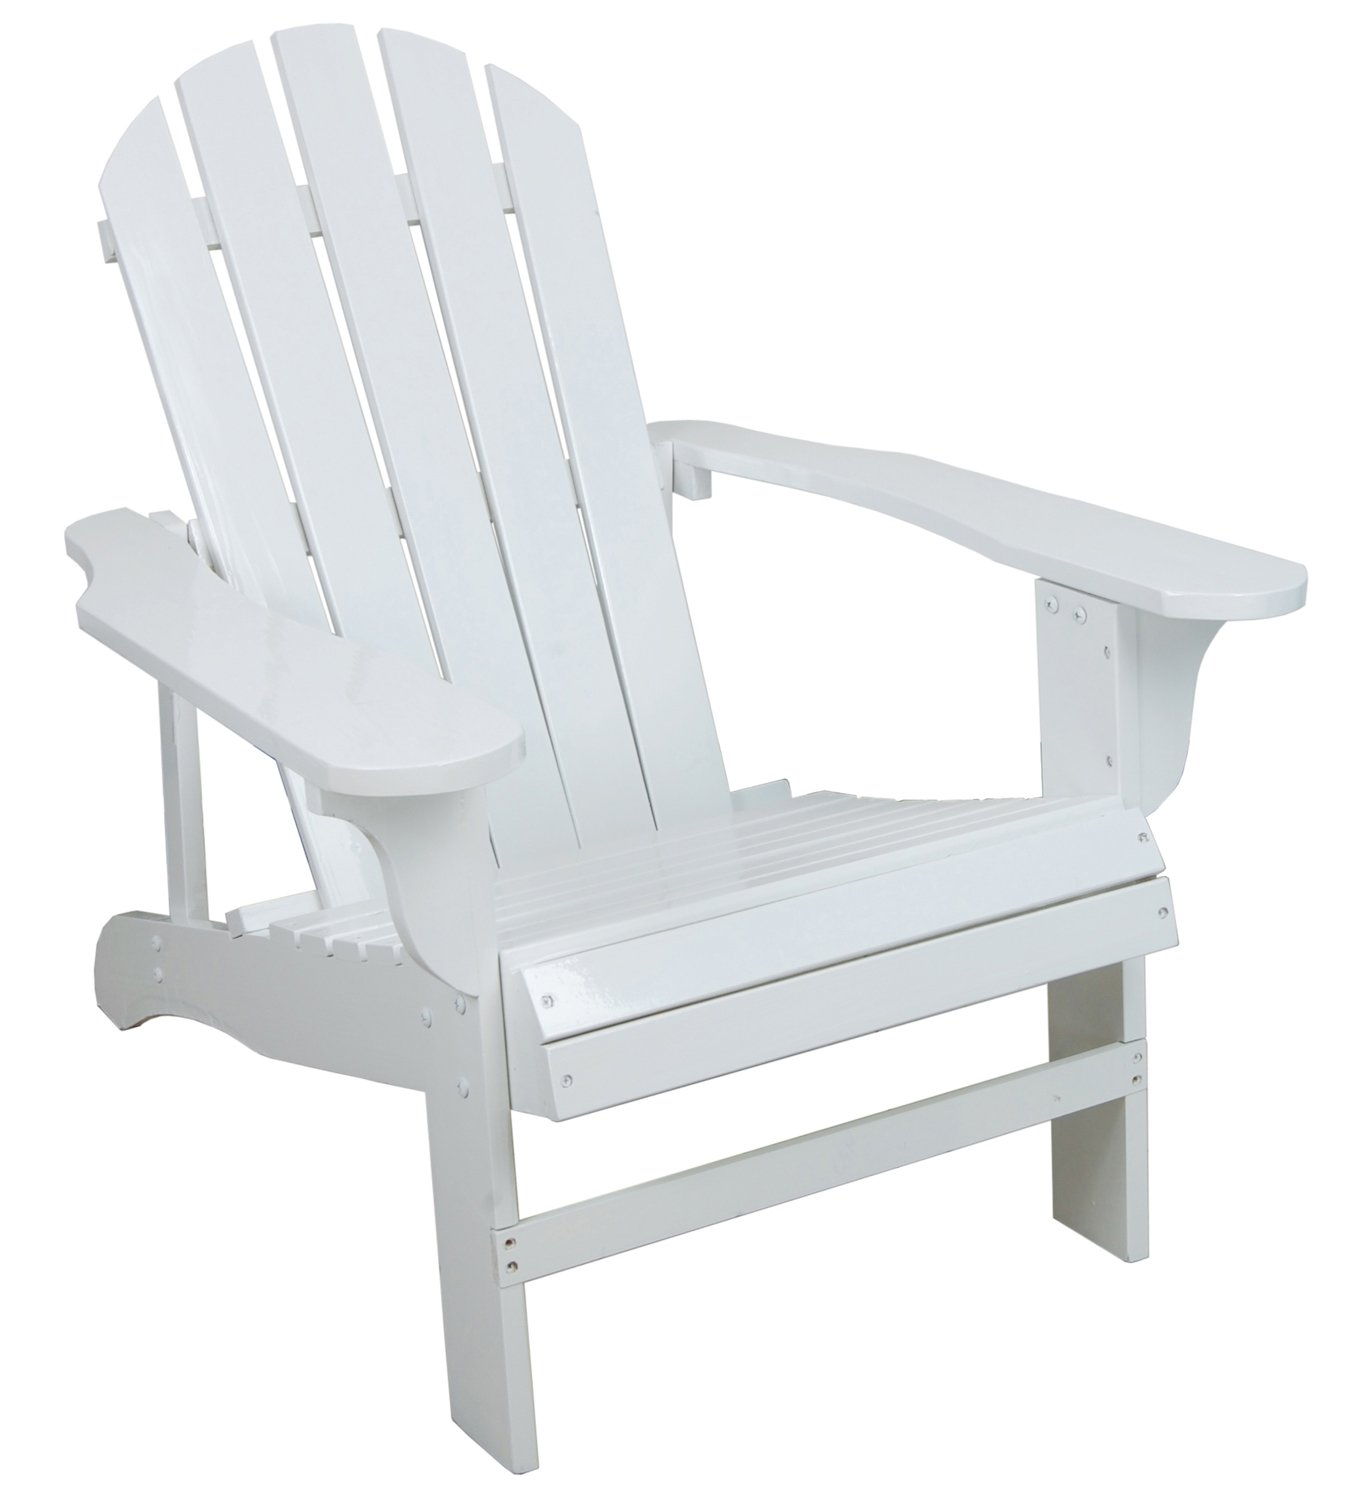 amazon com classic white painted wood adirondack chair chaise rh amazon com costco outdoor furniture adirondack chairs outdoor furniture covers adirondack chairs